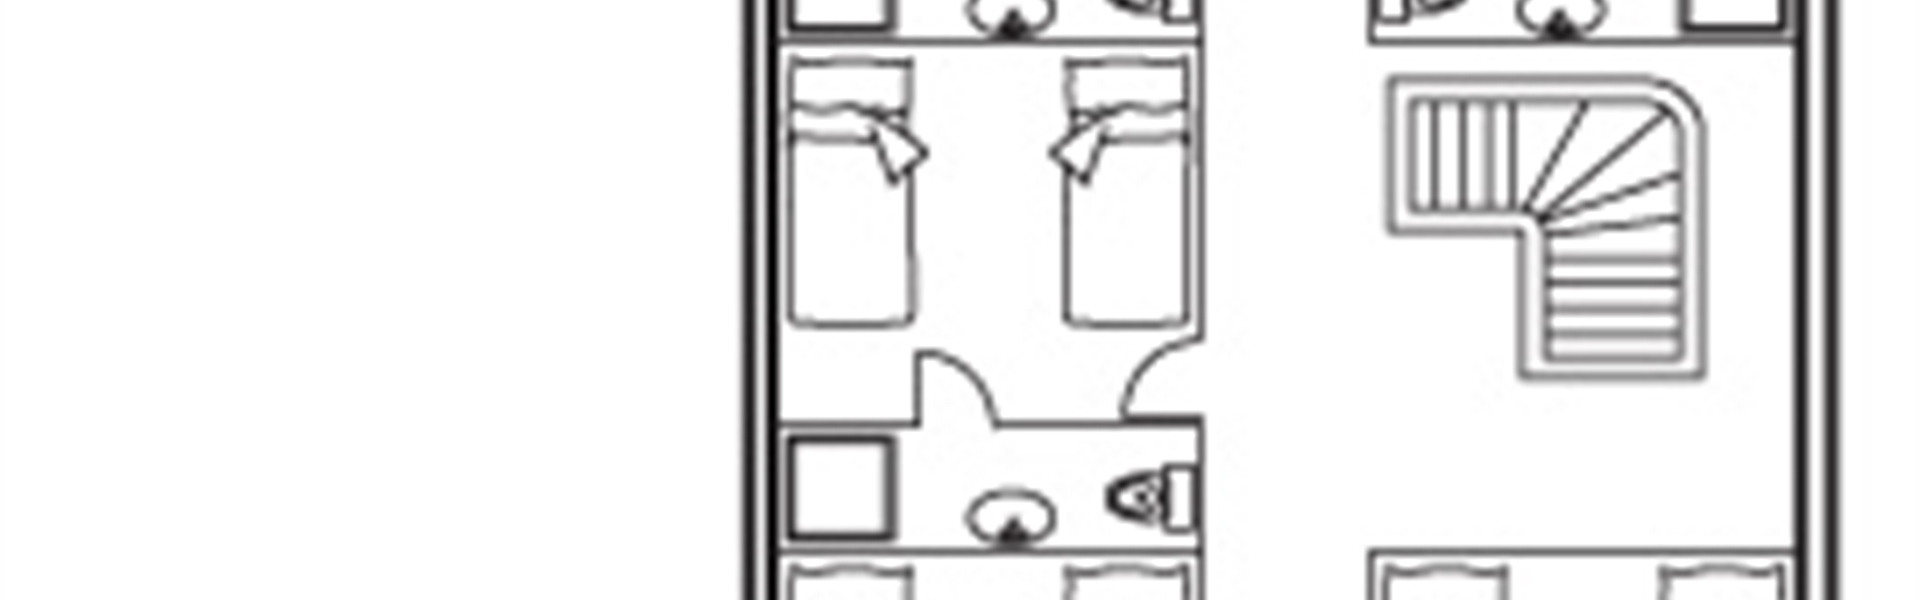 Cabin deck diagram